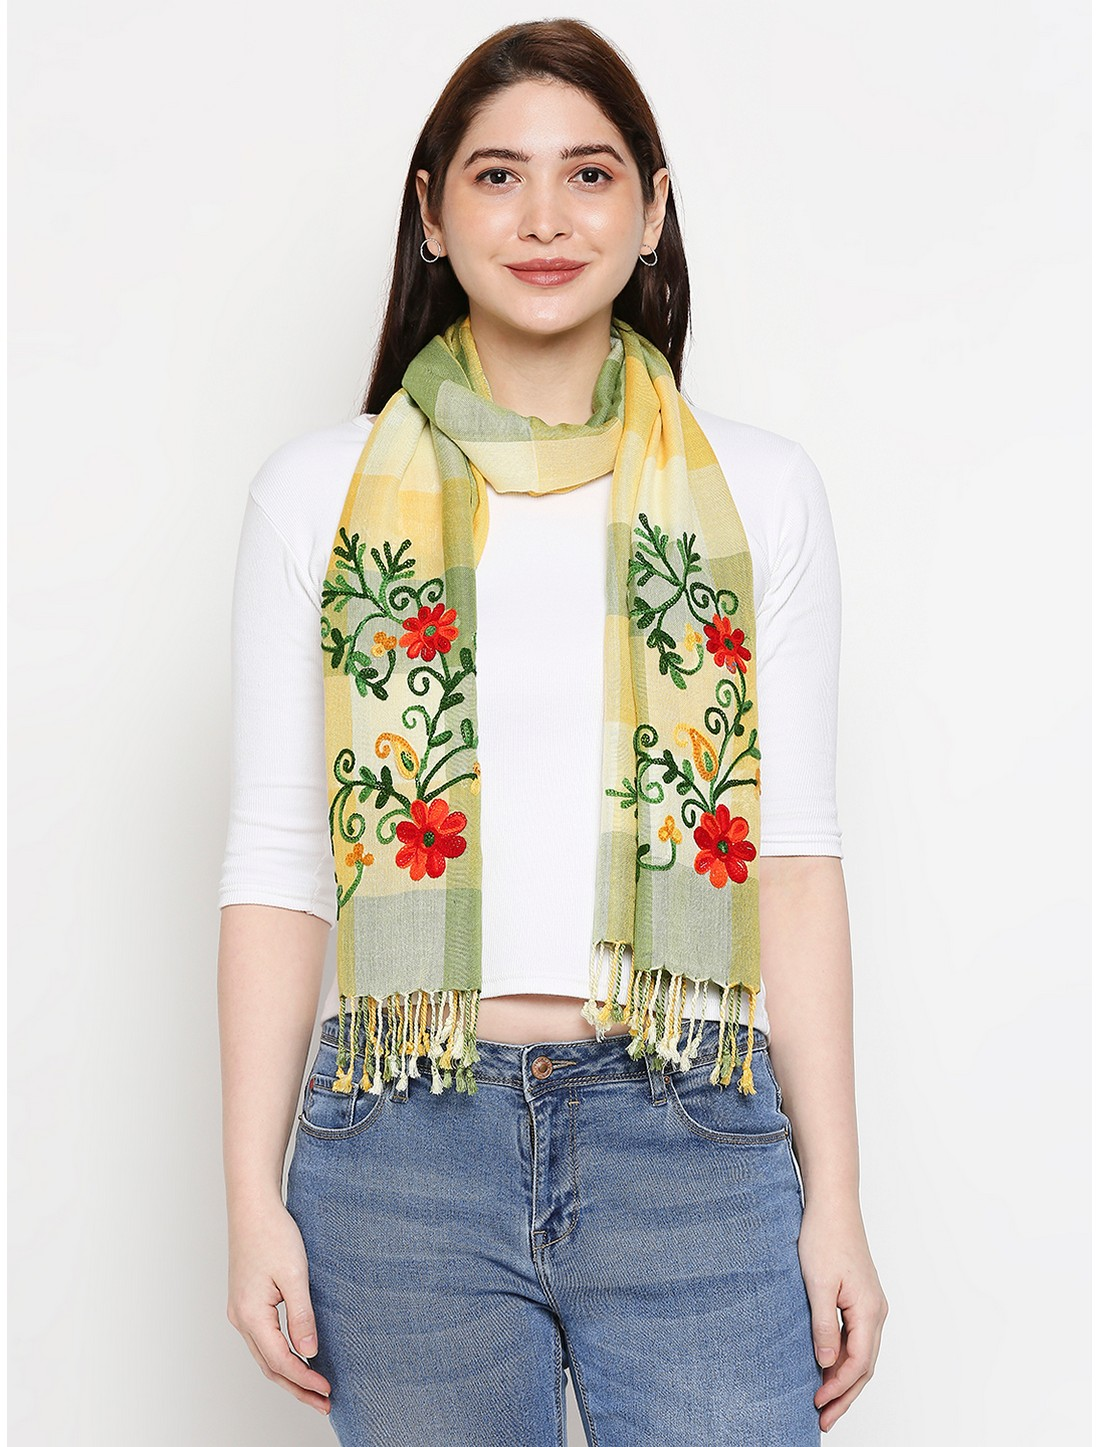 Get Wrapped | Get Wrapped Multi Yarn Dyed Scarves with Embroidery for Women